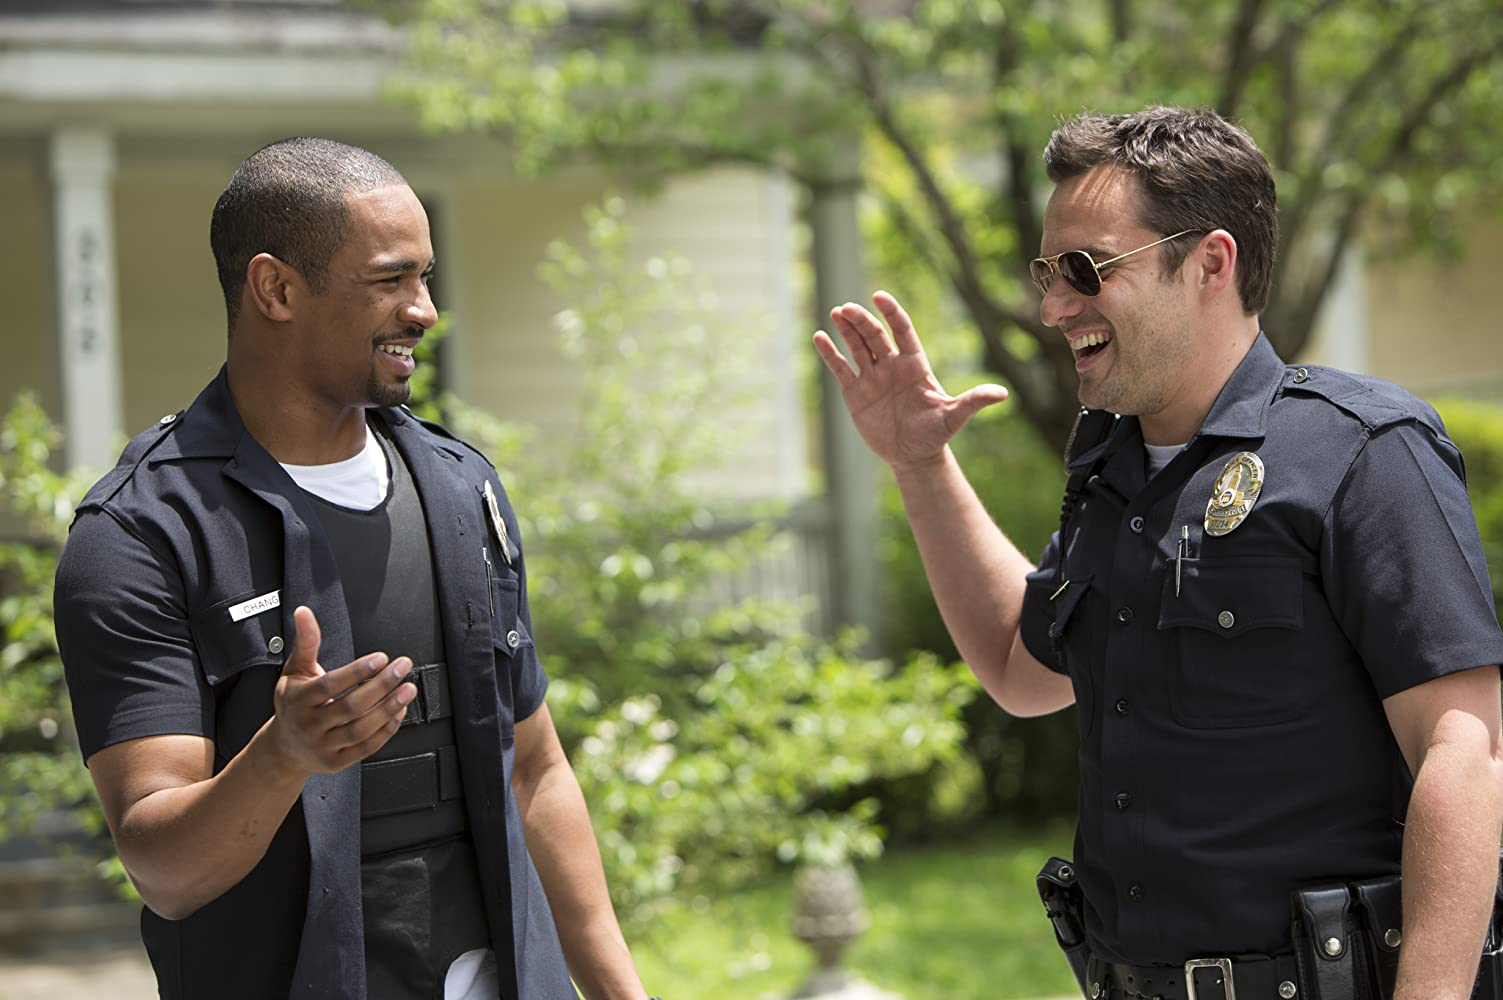 Damon Wayans Jr. and Jake Johnson in Let's Be Cops (2014)